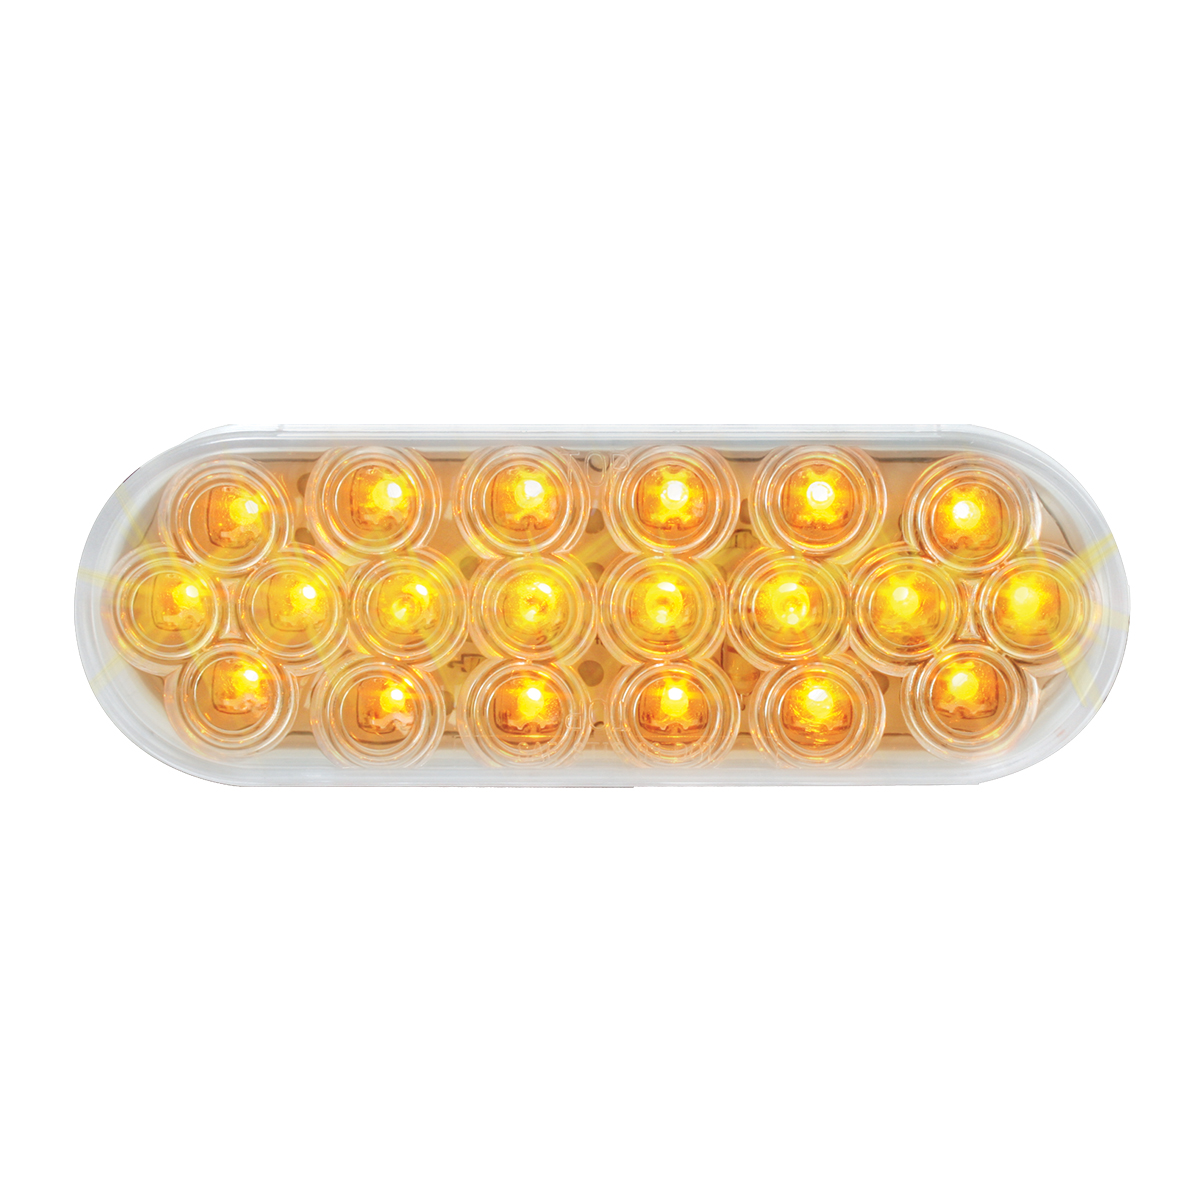 87728 Oval Fleet LED Light in Amber/Clear